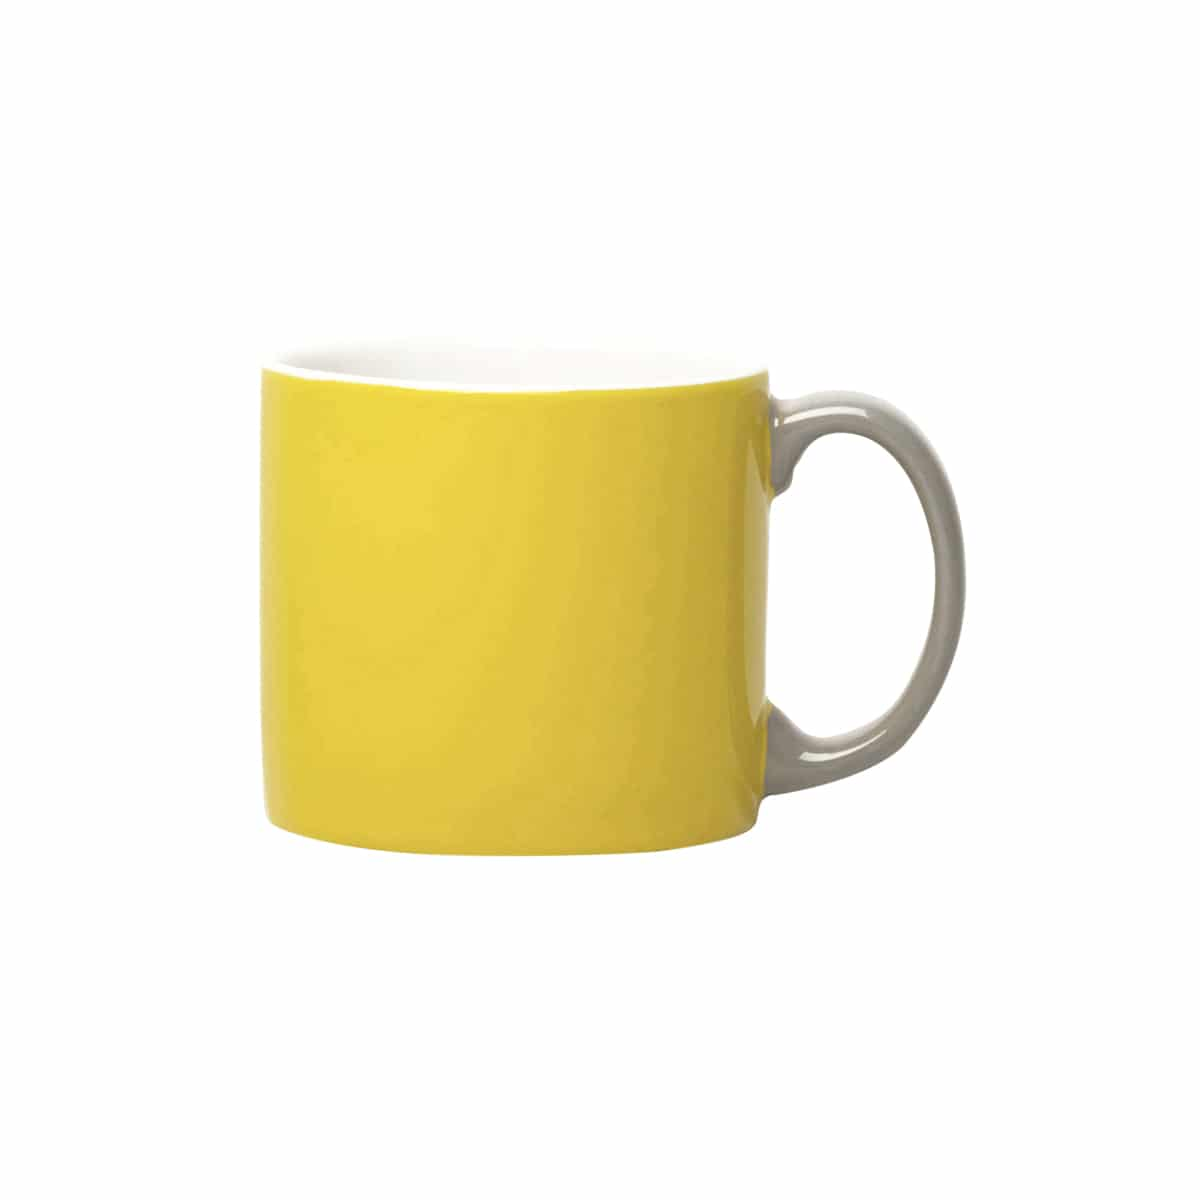 mug my mug medium jaune jansen+co zeeloft